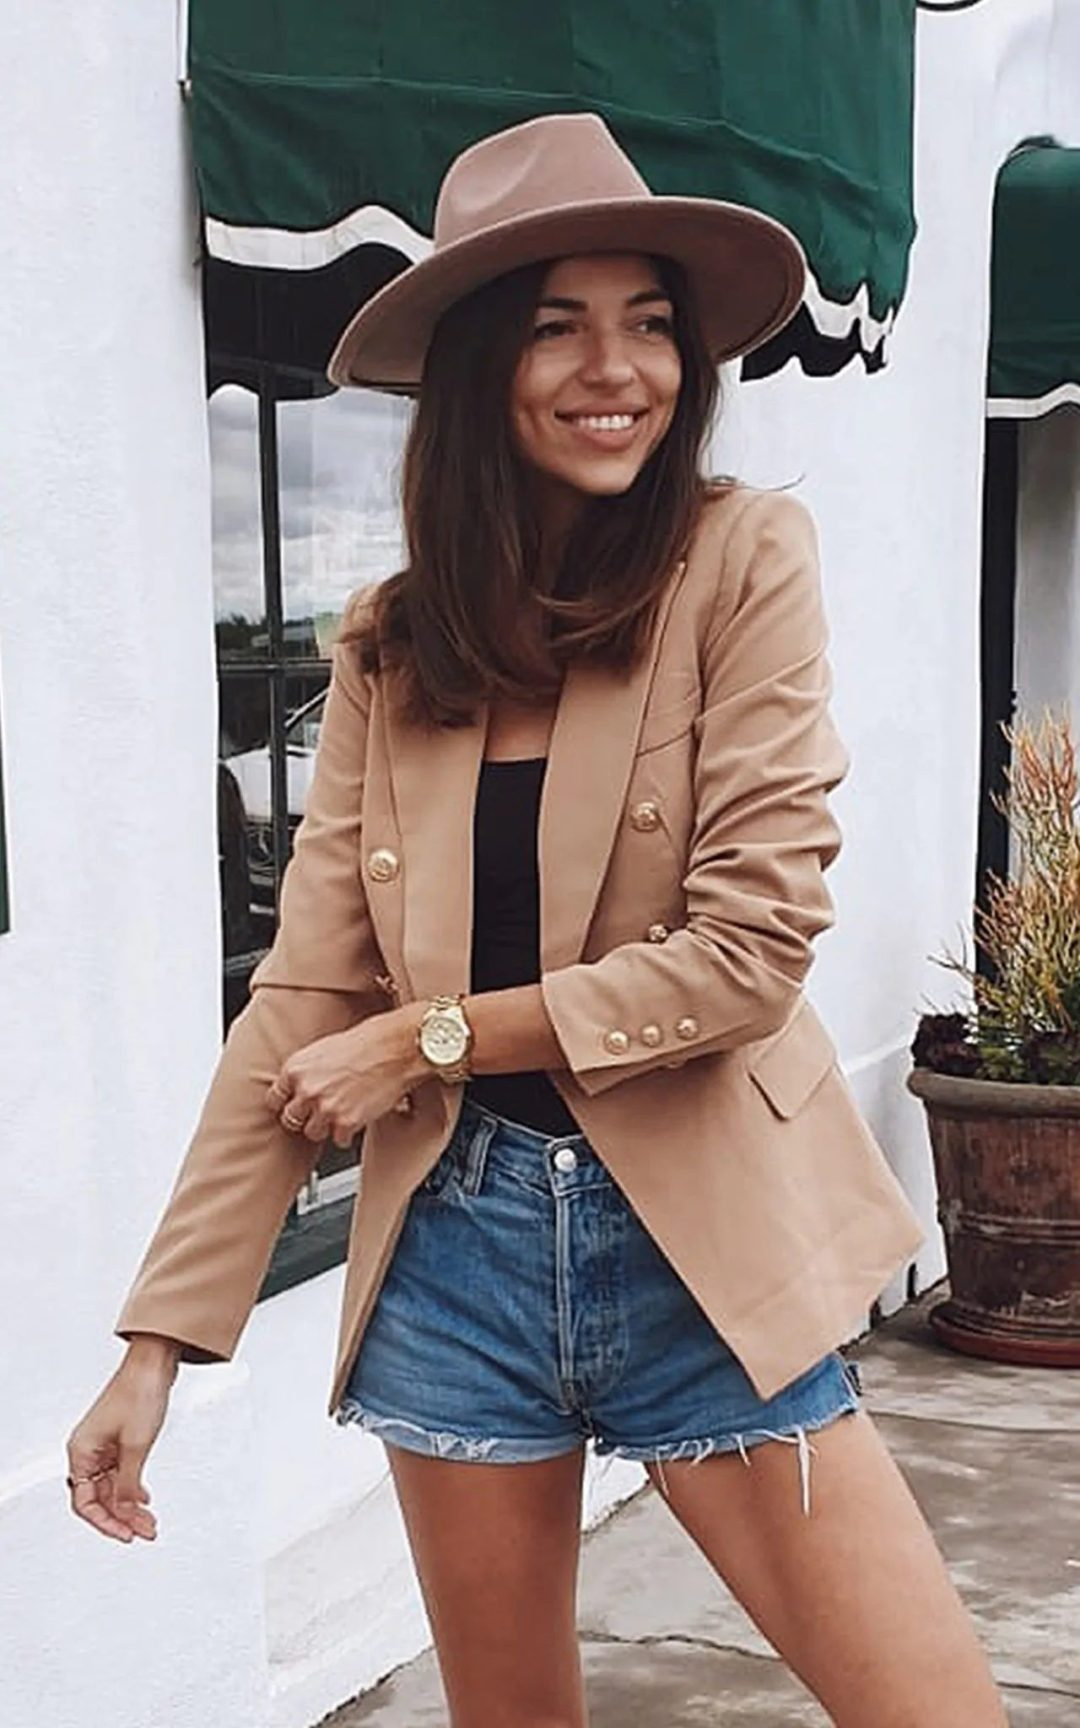 Camel blazer outfit with shorts